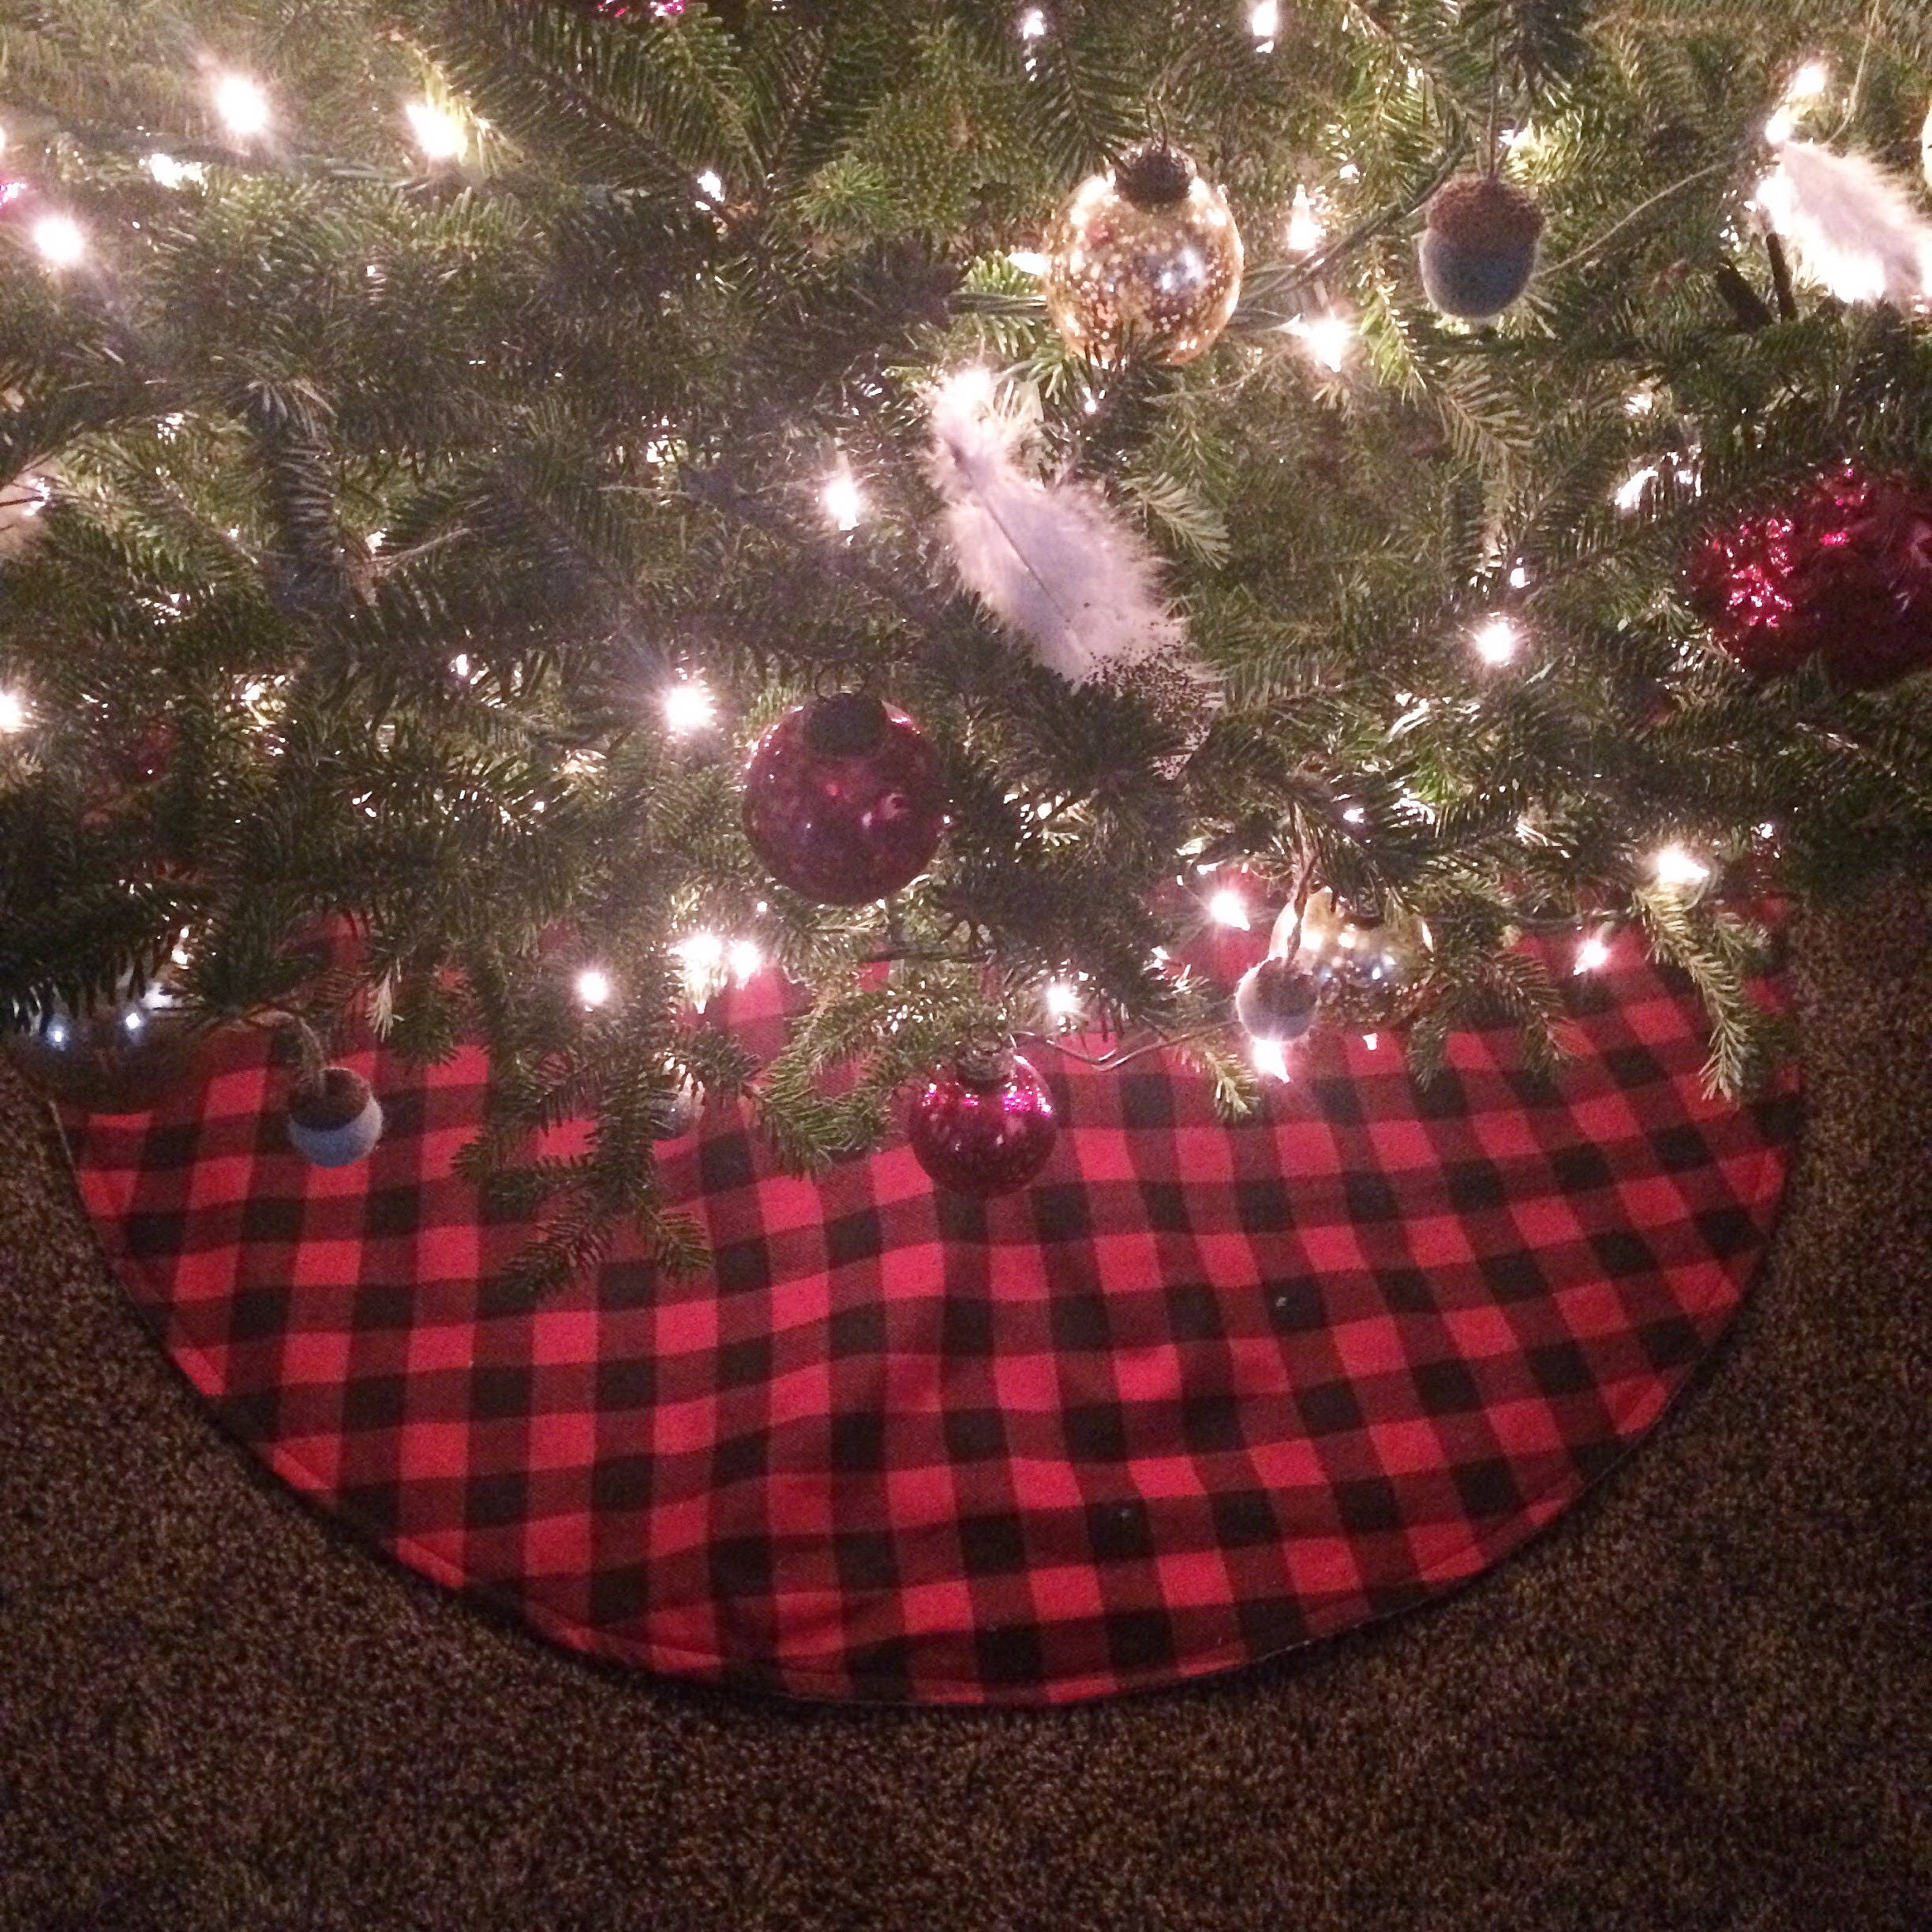 40 buffalo plaid natural burlap tree skirt redblack check cotton flannel christmas woodland cabinfarmhouse decor rustic chic - Red And Black Christmas Decorations